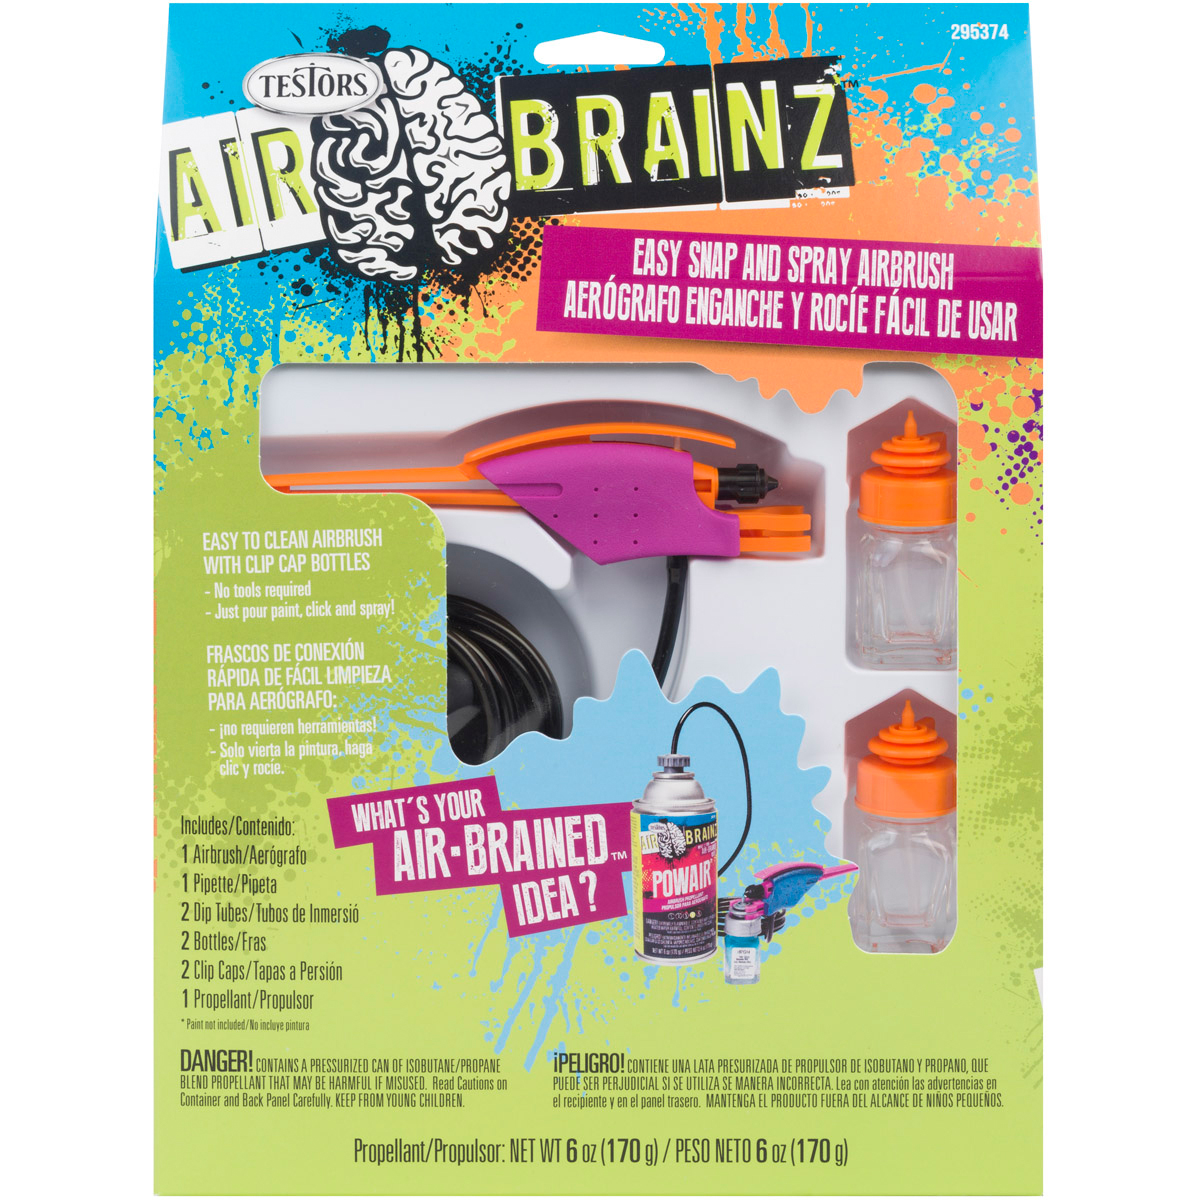 Image of Airbrainz Easy Snap and Spray Airbrush